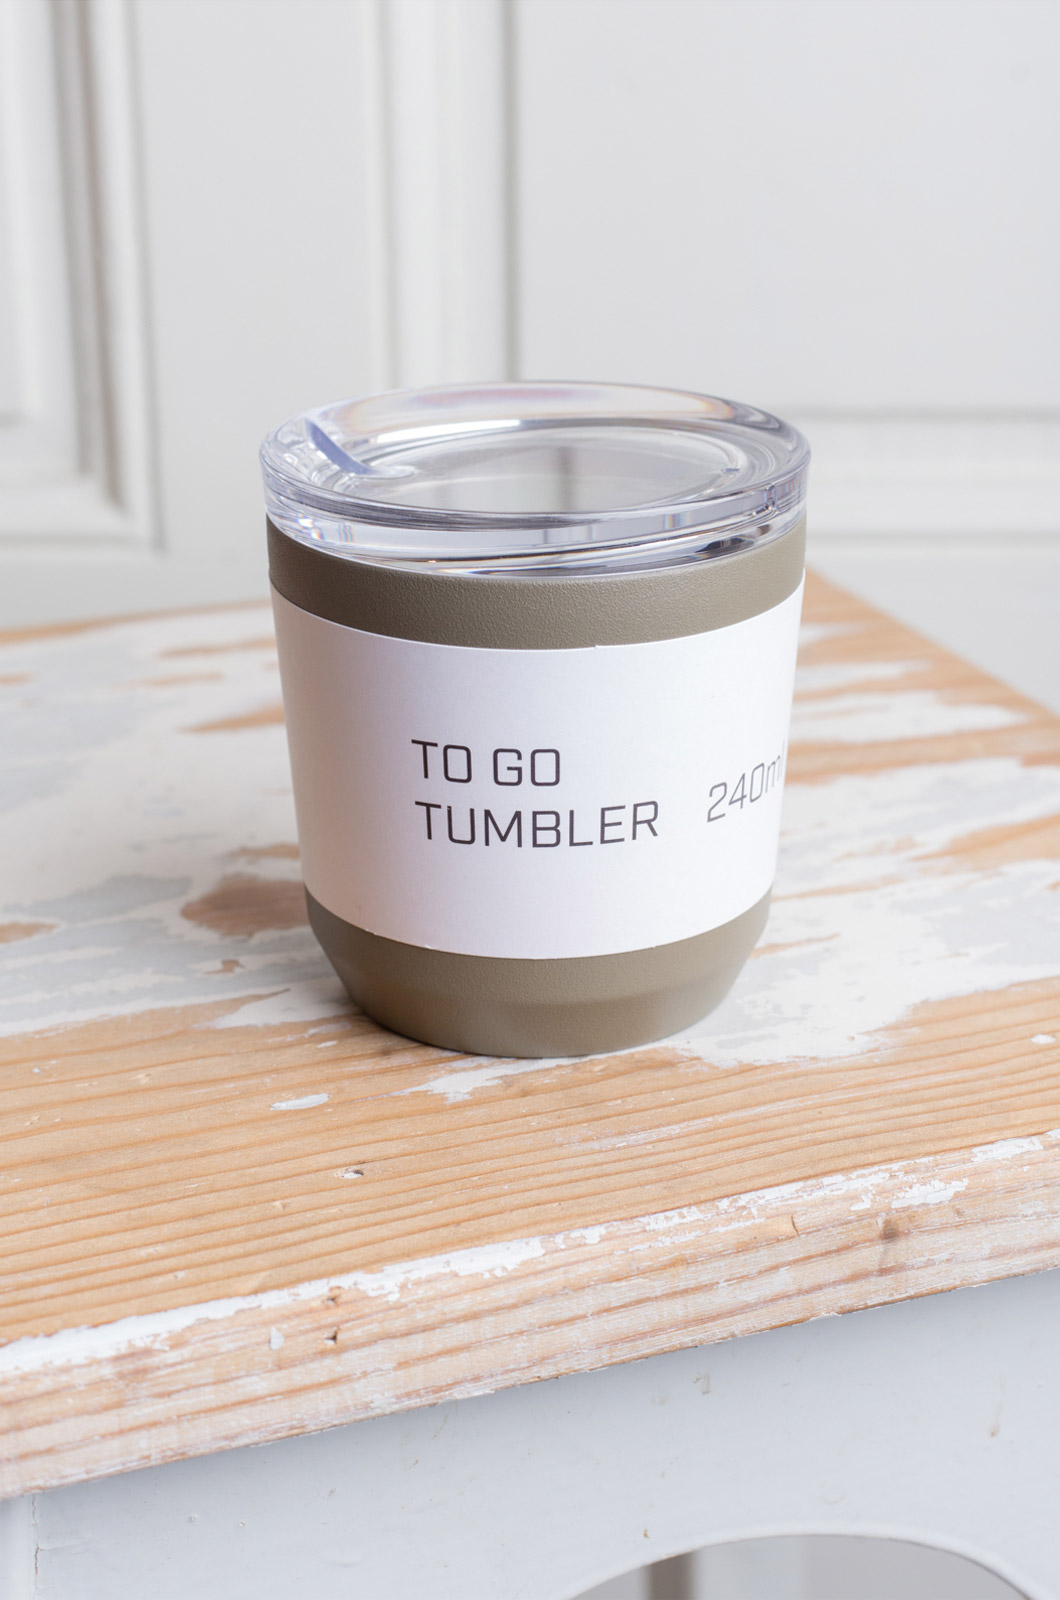 Kinto - To Go Tumbler - Khaki - 240 ml